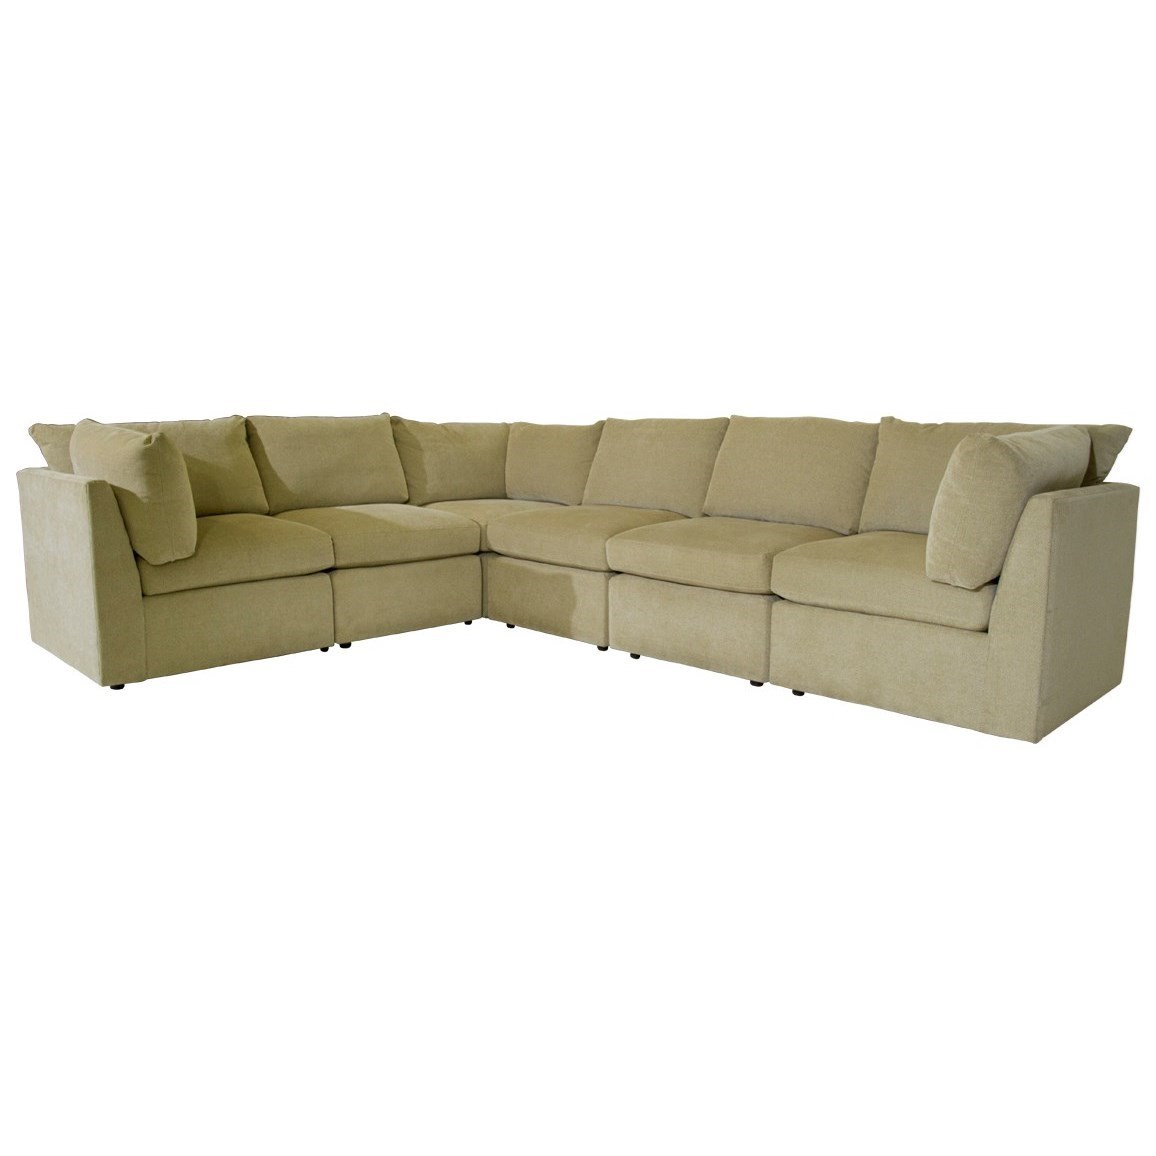 mccreary modern 1057 sectional c s wo sons california rh california cswoandsons com mccreary modern sofa reviews mccreary modern sectional sofa